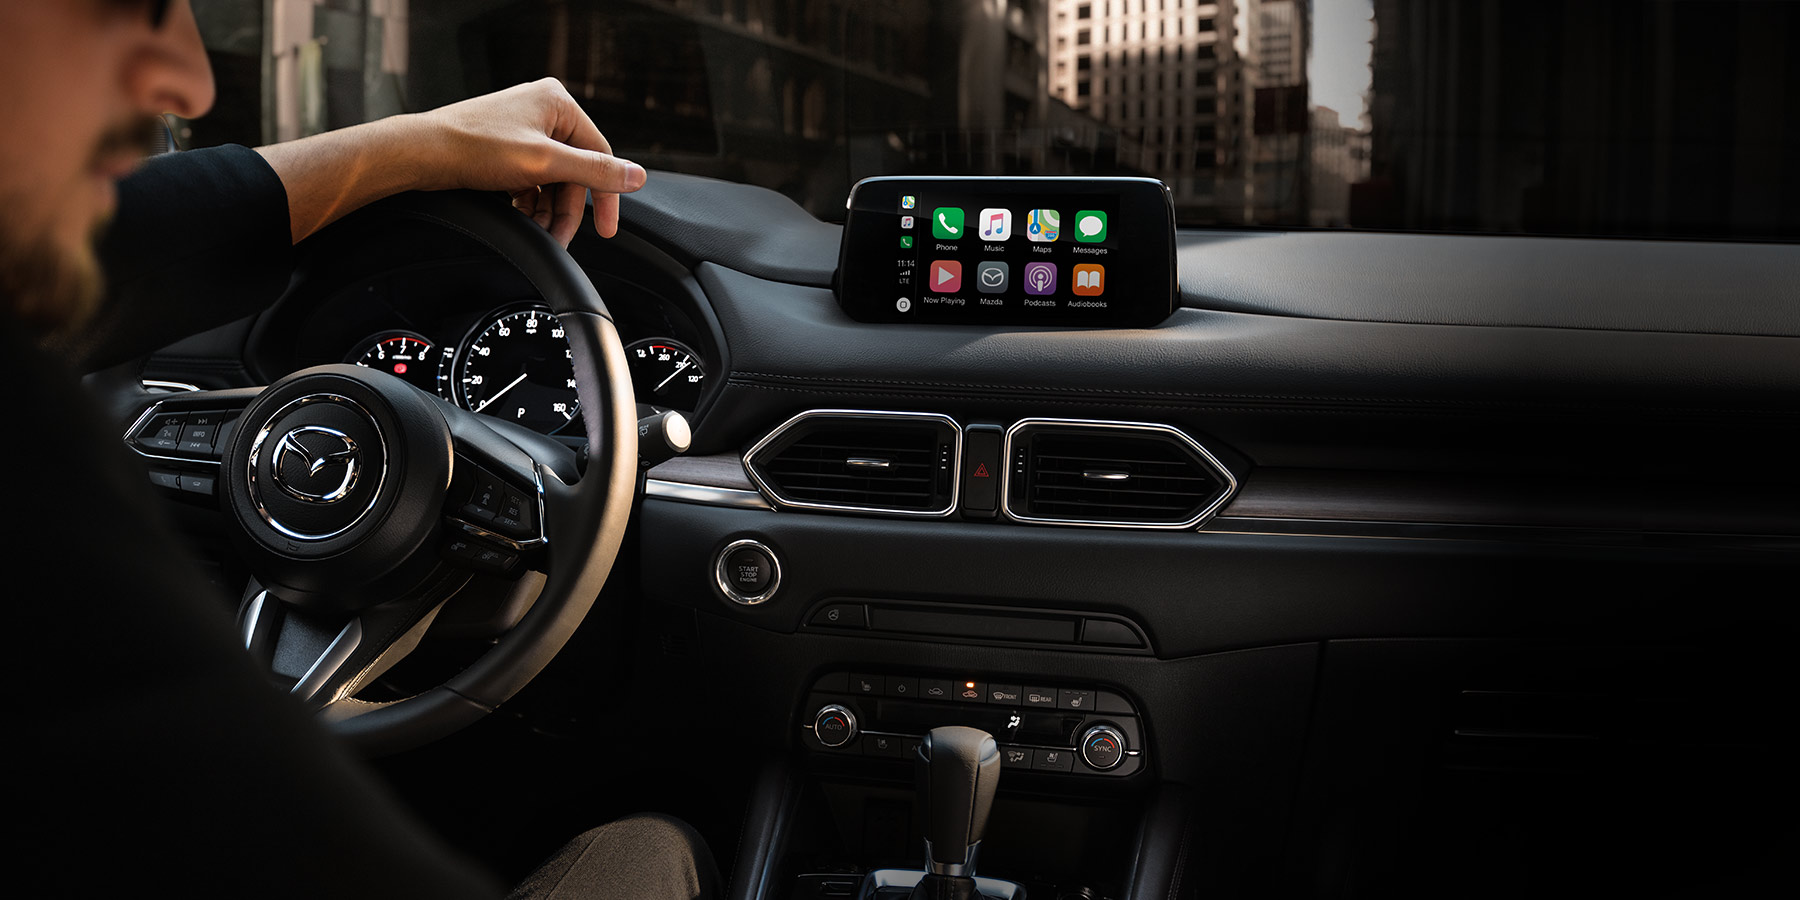 2019 Mazda CX-5 vs Ford Escape Technology Features near St. Charles, IL